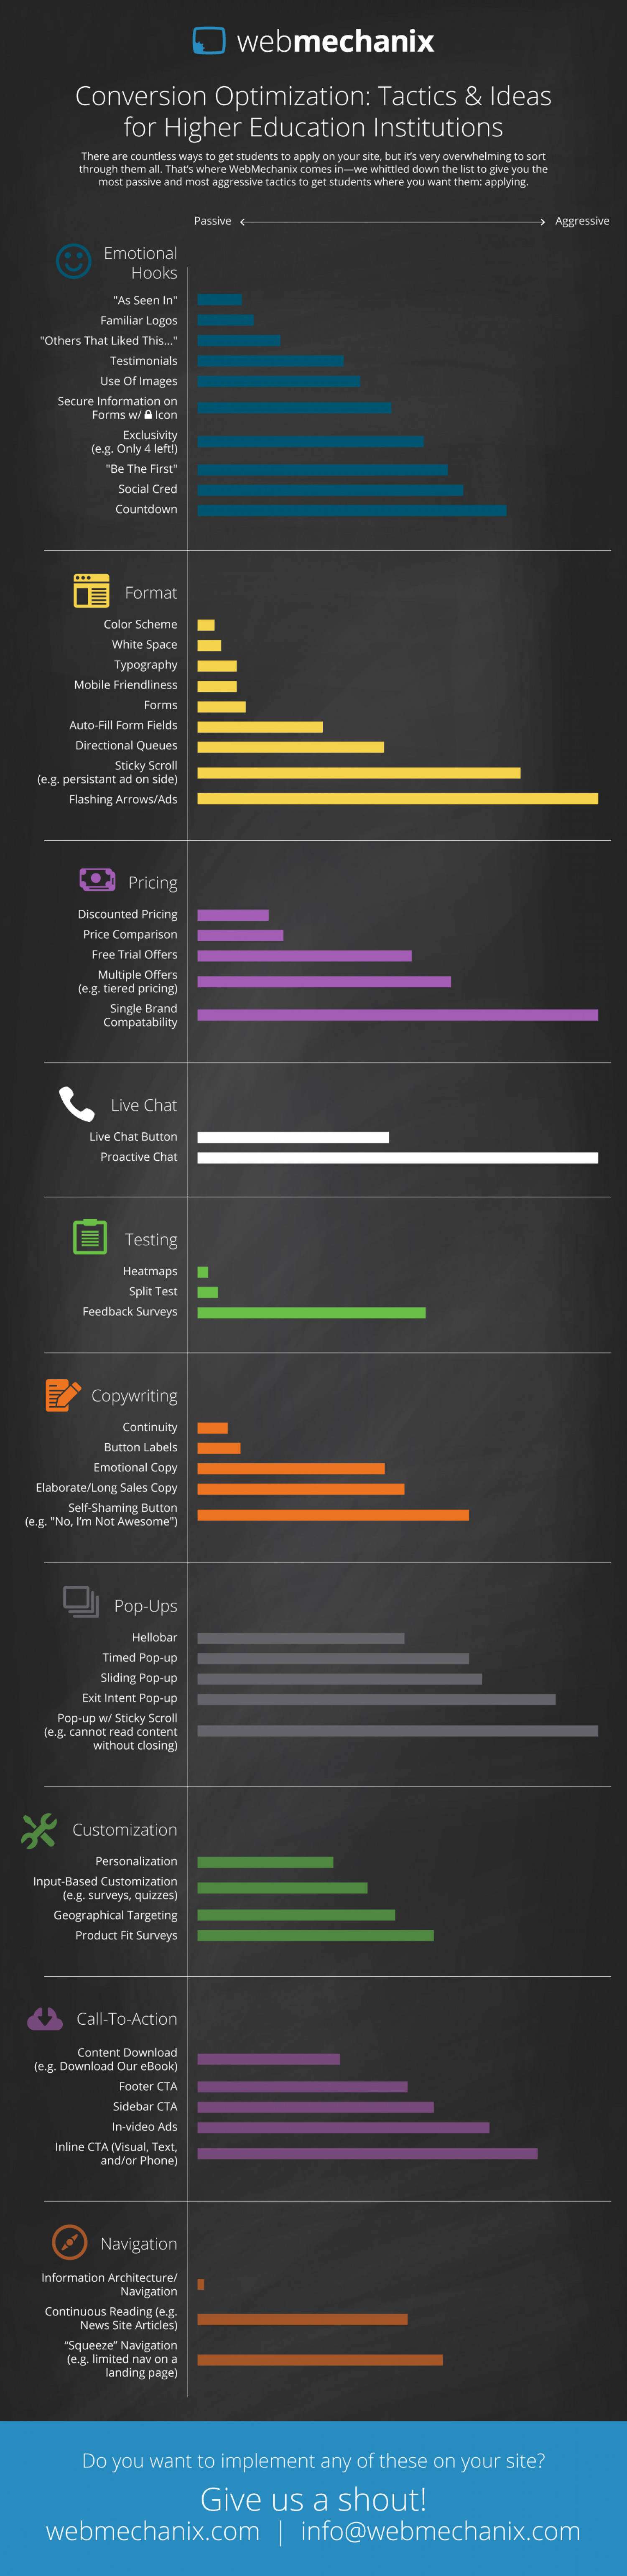 Conversion Optimization: Tactics & Ideas for Higher Education Institutions Infographic